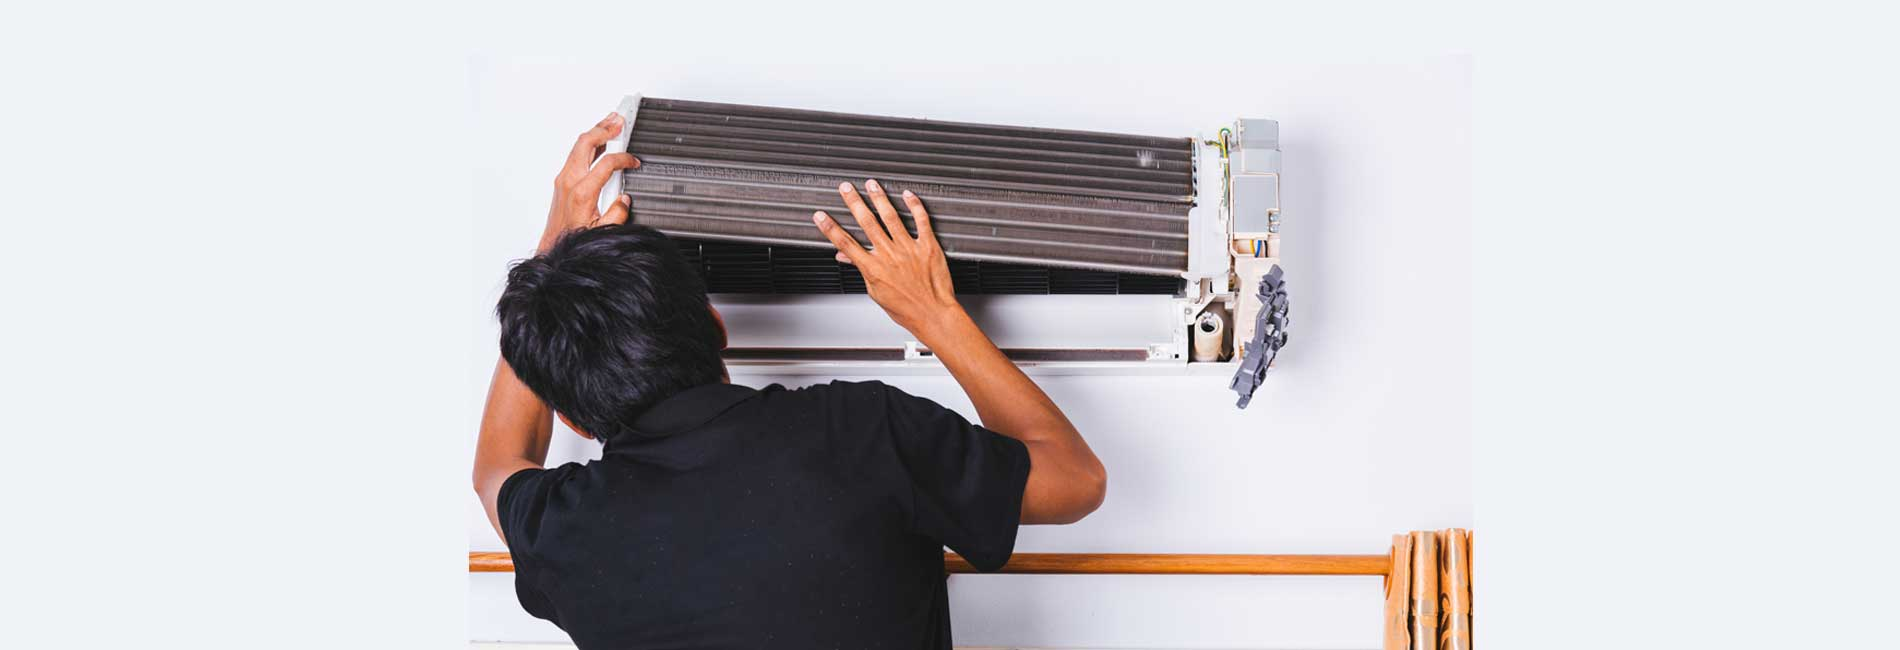 Air Condition Repair in Pudupakkam